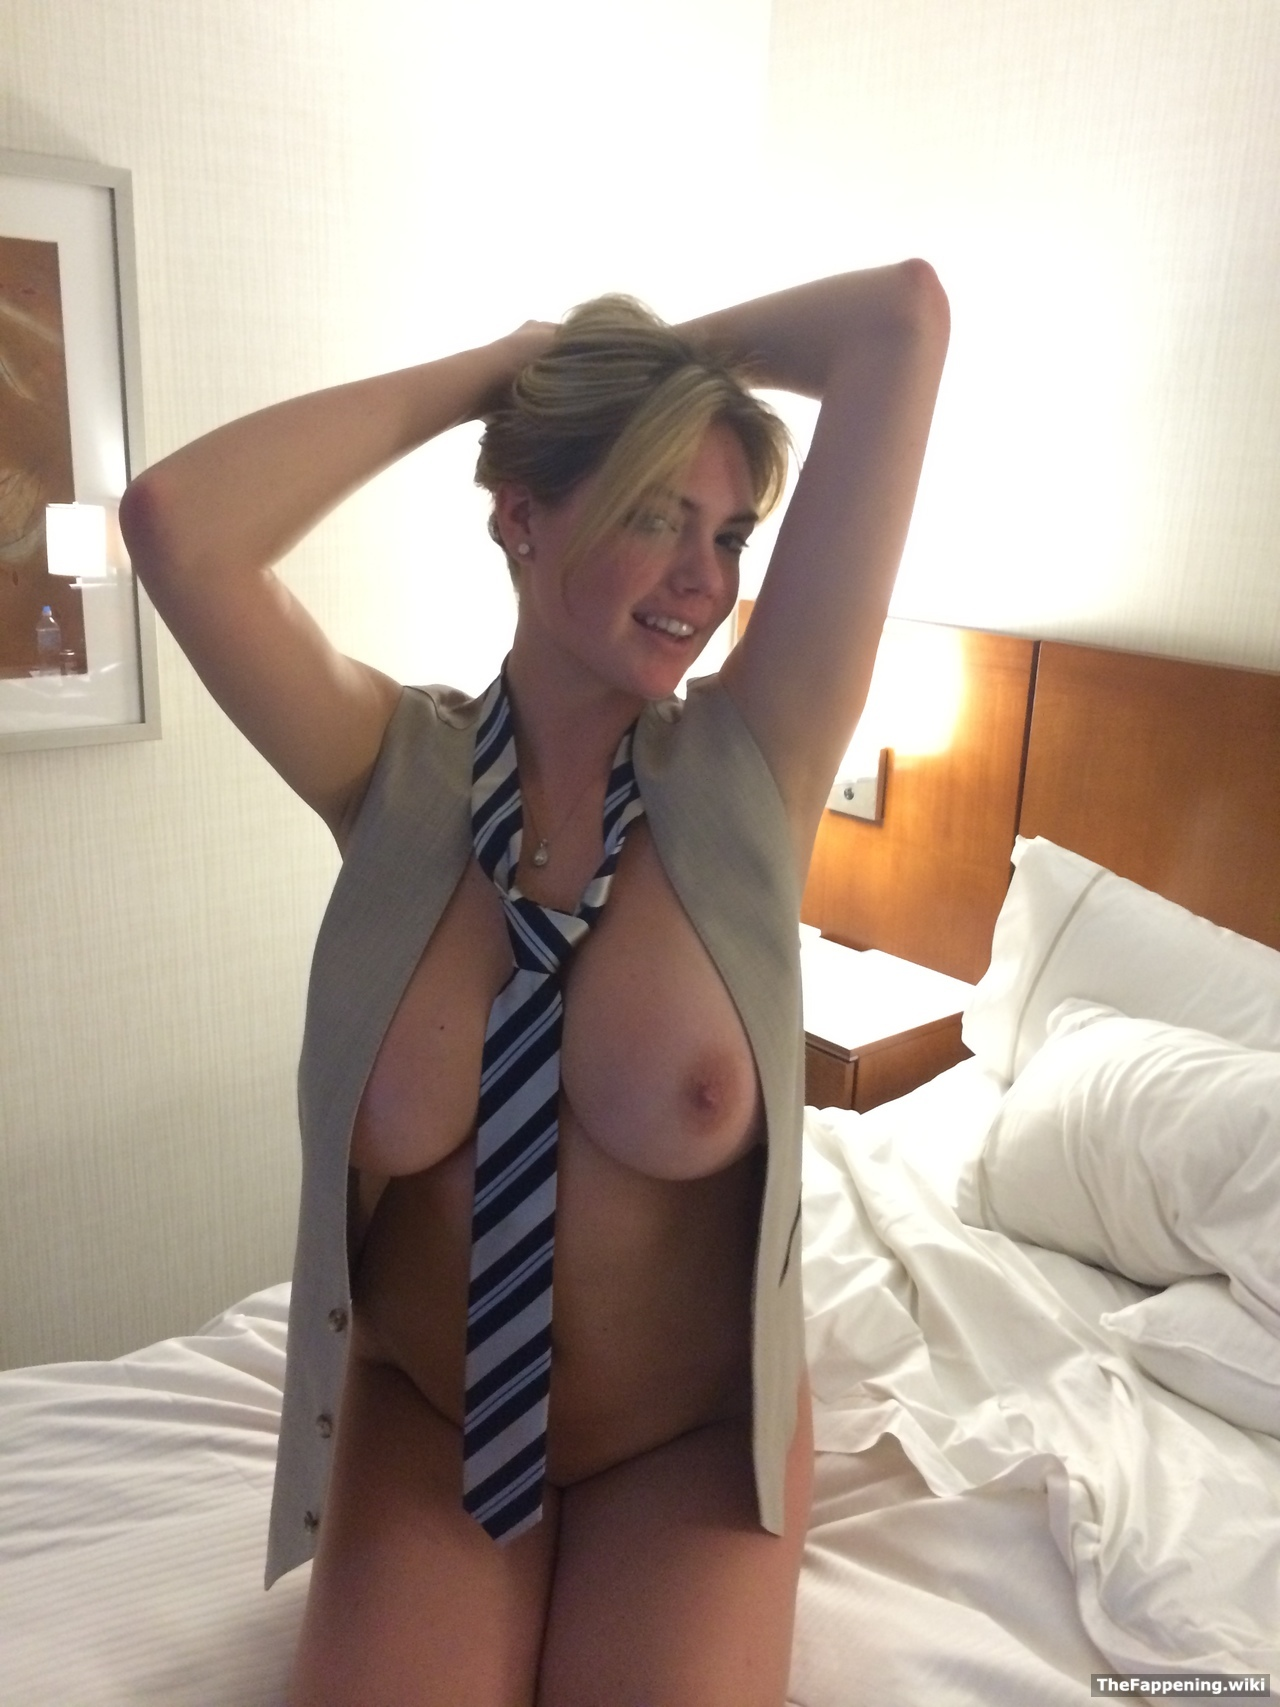 TheB9.com - B9board • View topic - Kate Upton topless on a ...